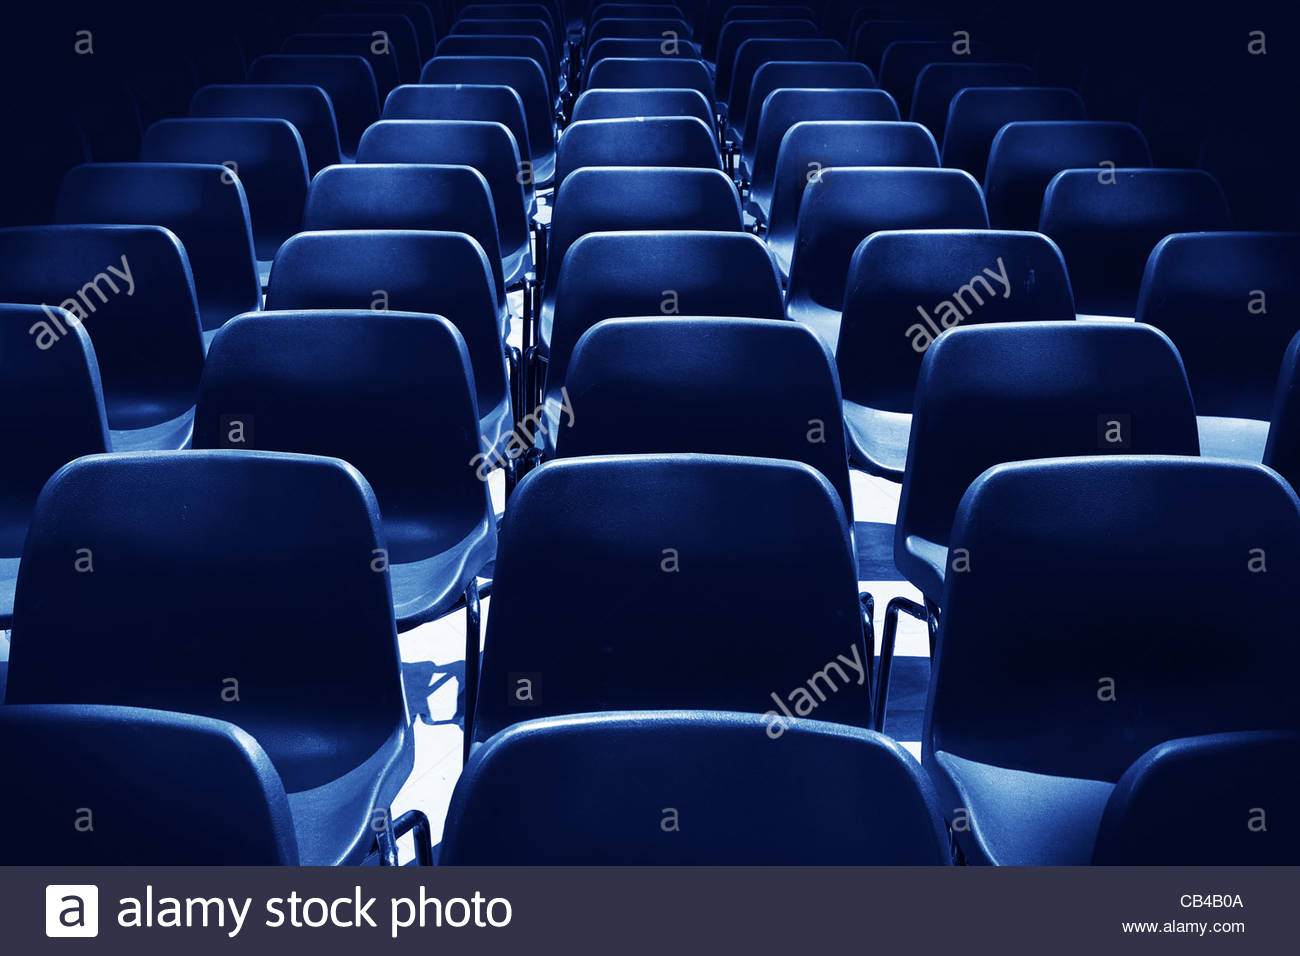 empty blue chairs - Stock Image